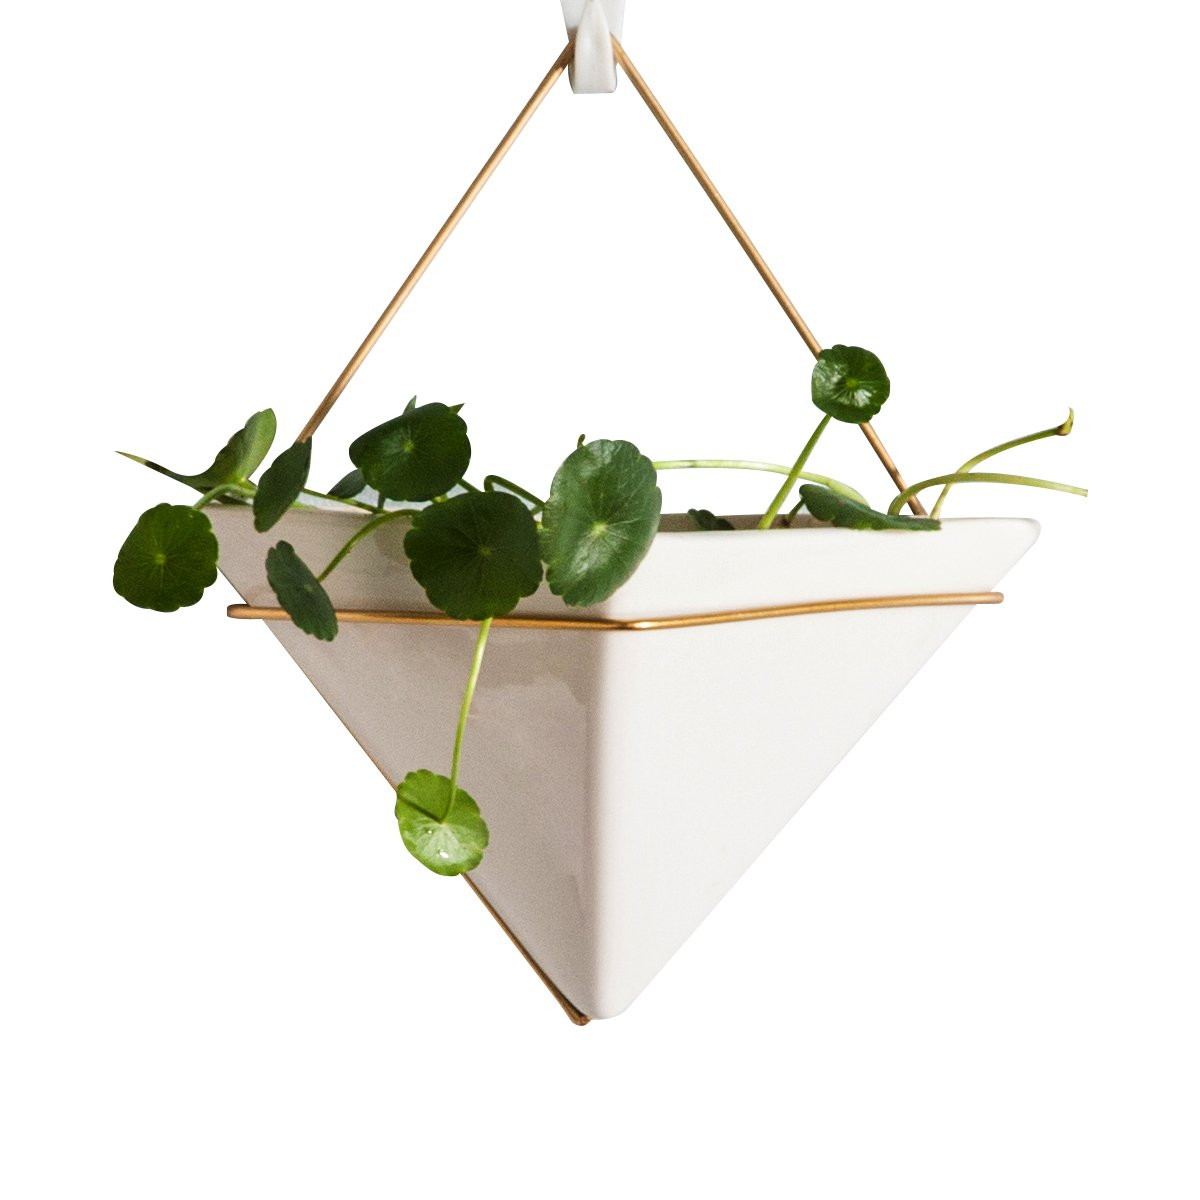 Hanging Planter For Indoor Plants, Geometric Wall Decorative Flower Pot